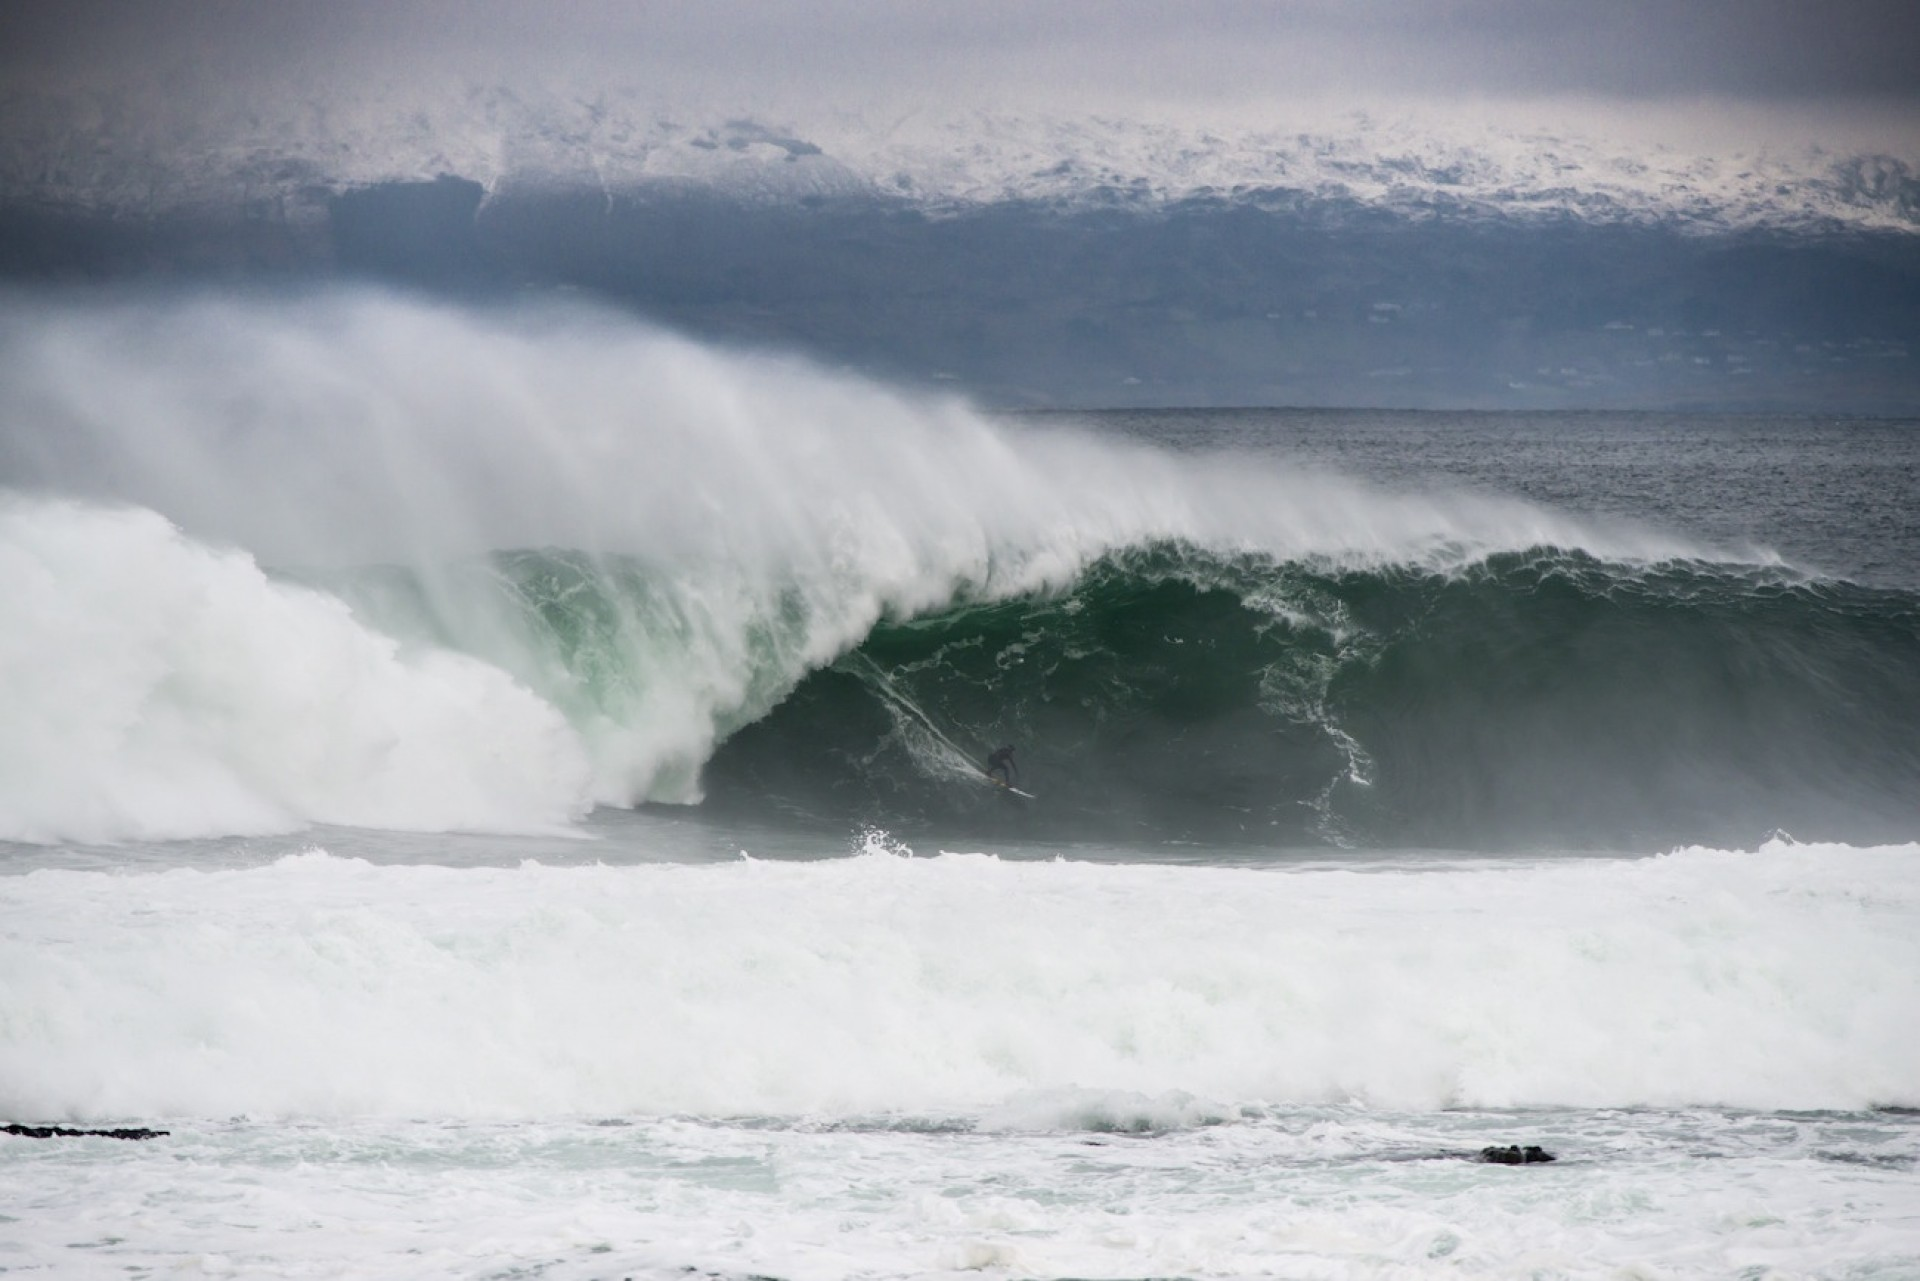 LarsJacobsen's photo of Mullaghmore Head